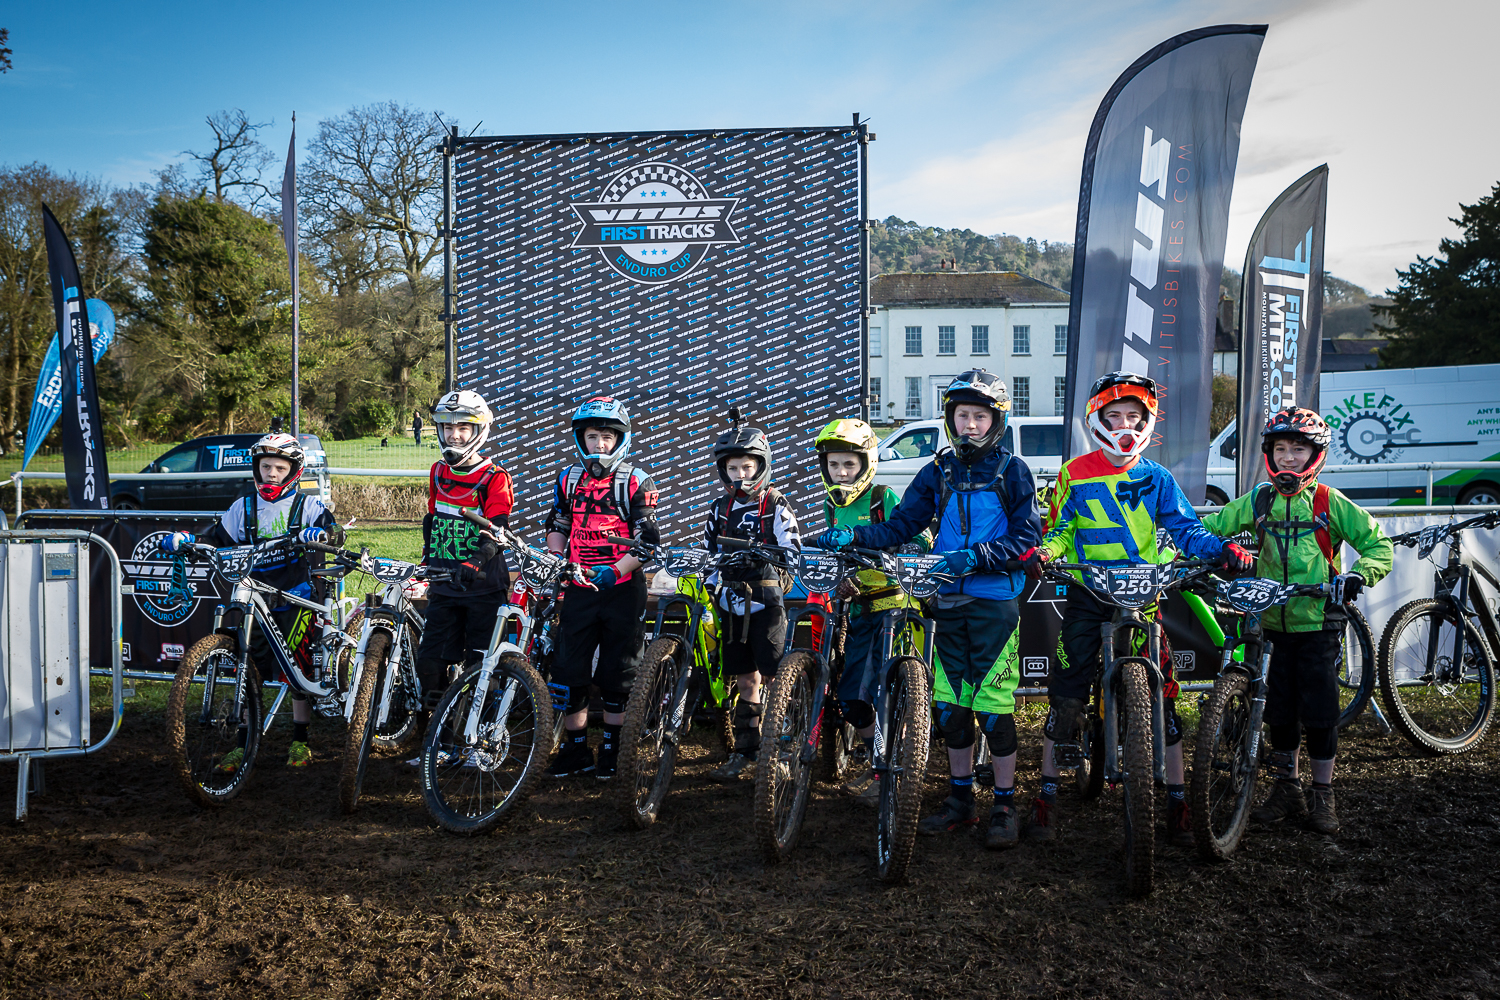 Vitus First Tracks Rd 1 Sunday Race